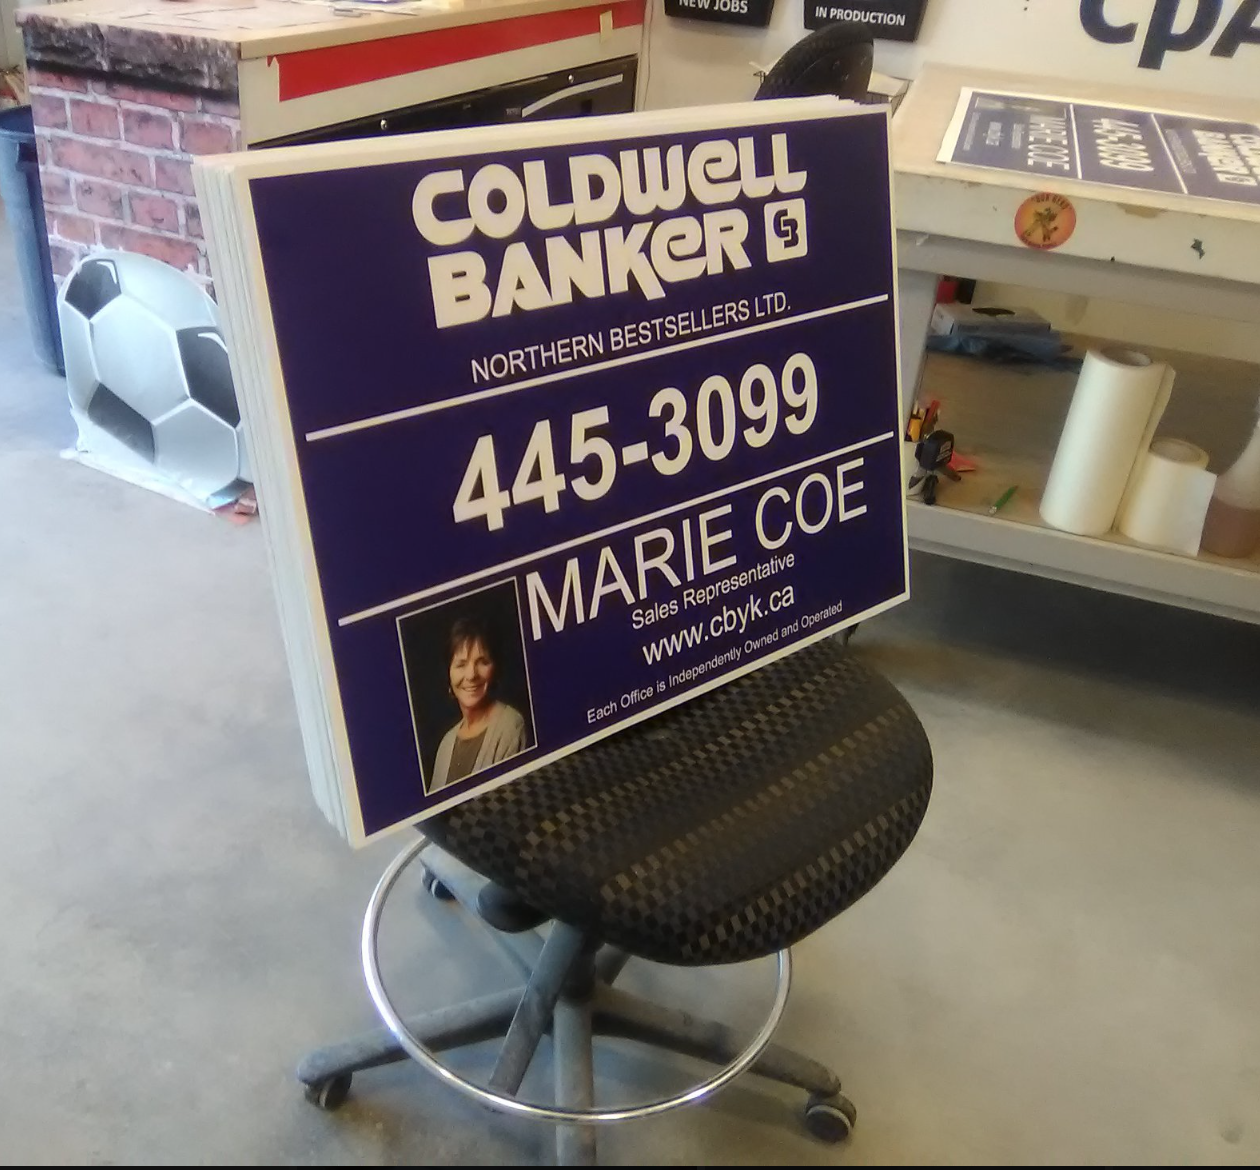 Coldwell Banker for sale signage